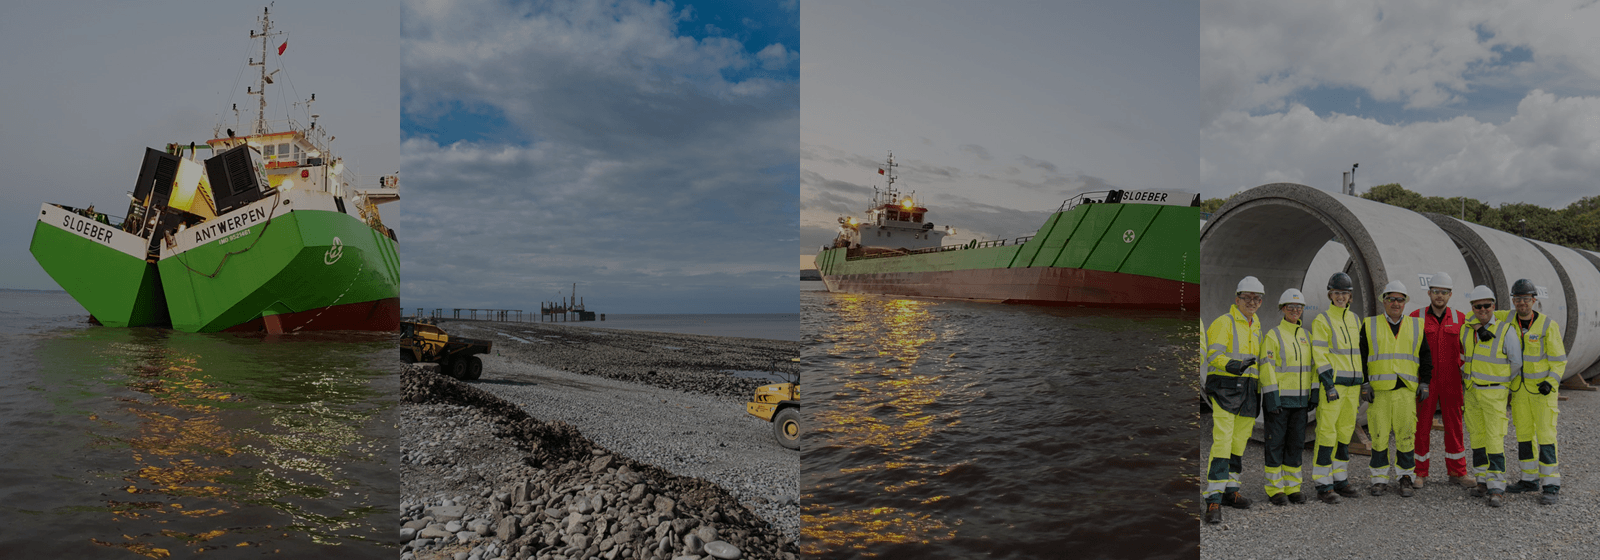 Dredging mud in the Bristol Channel | Hinkley Point C | EDF Energy